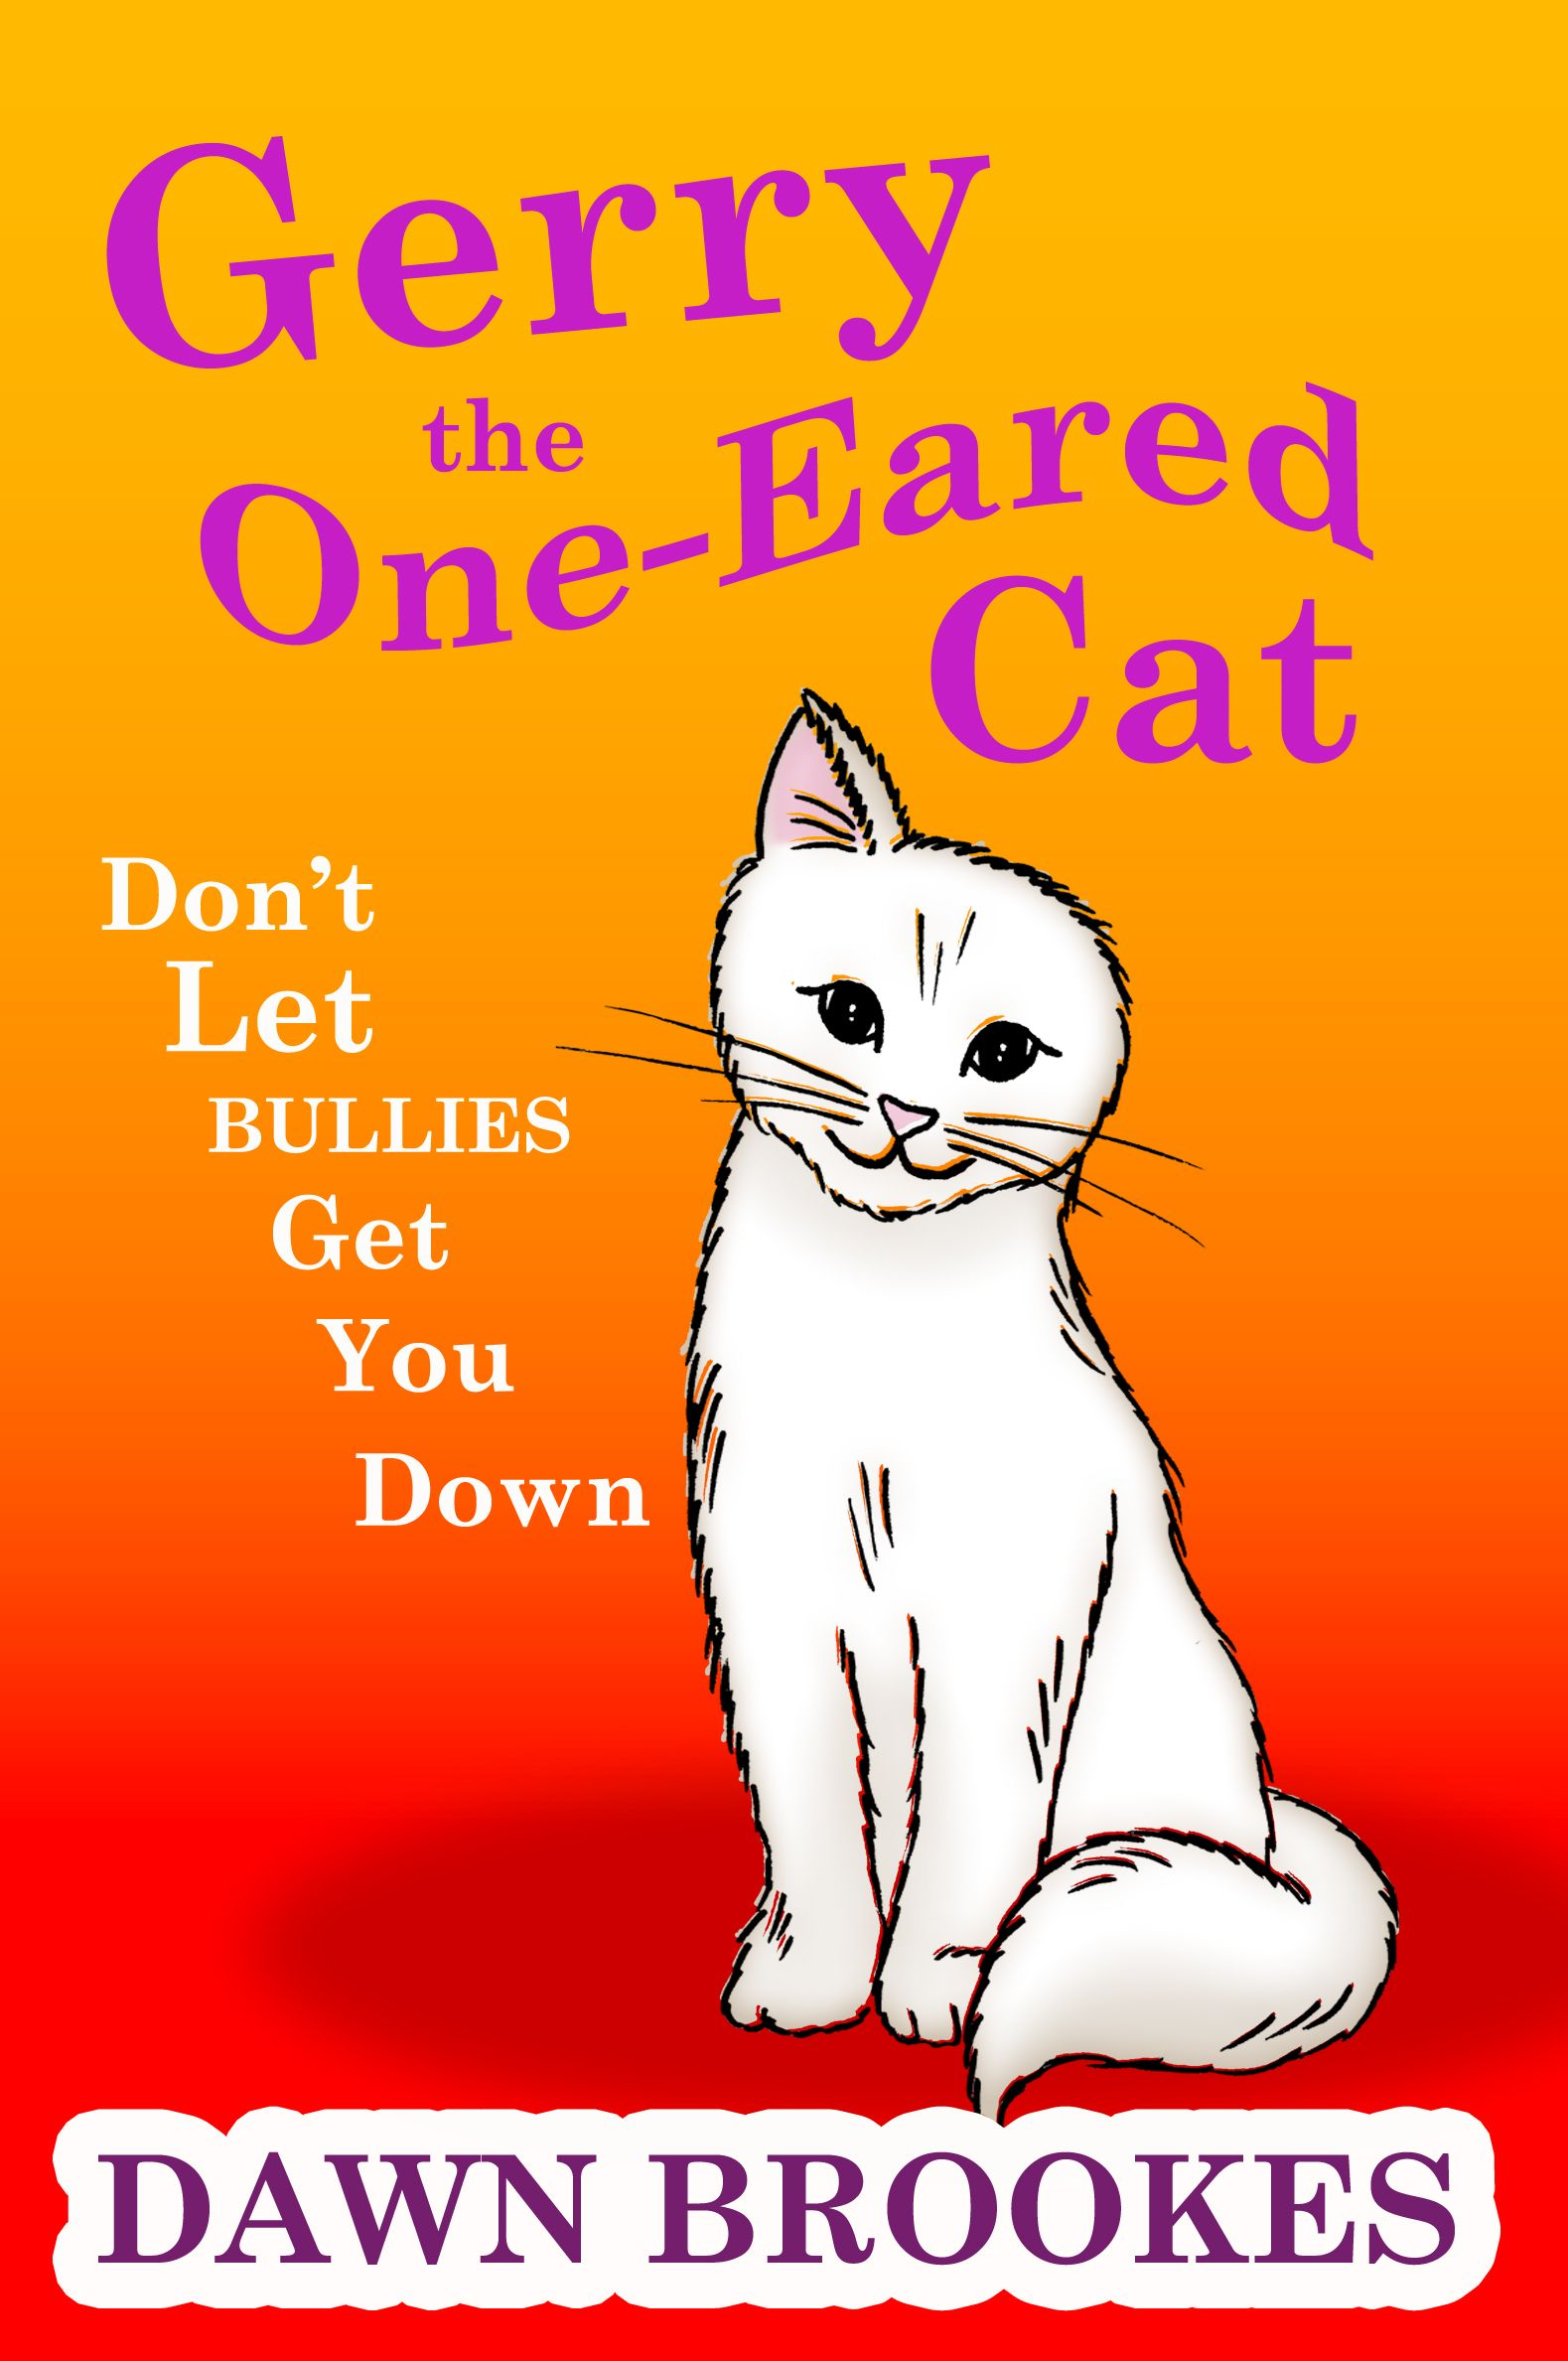 What Kids Think About Bullying And >> This Delightful Story Helps Children Think About Bullying And